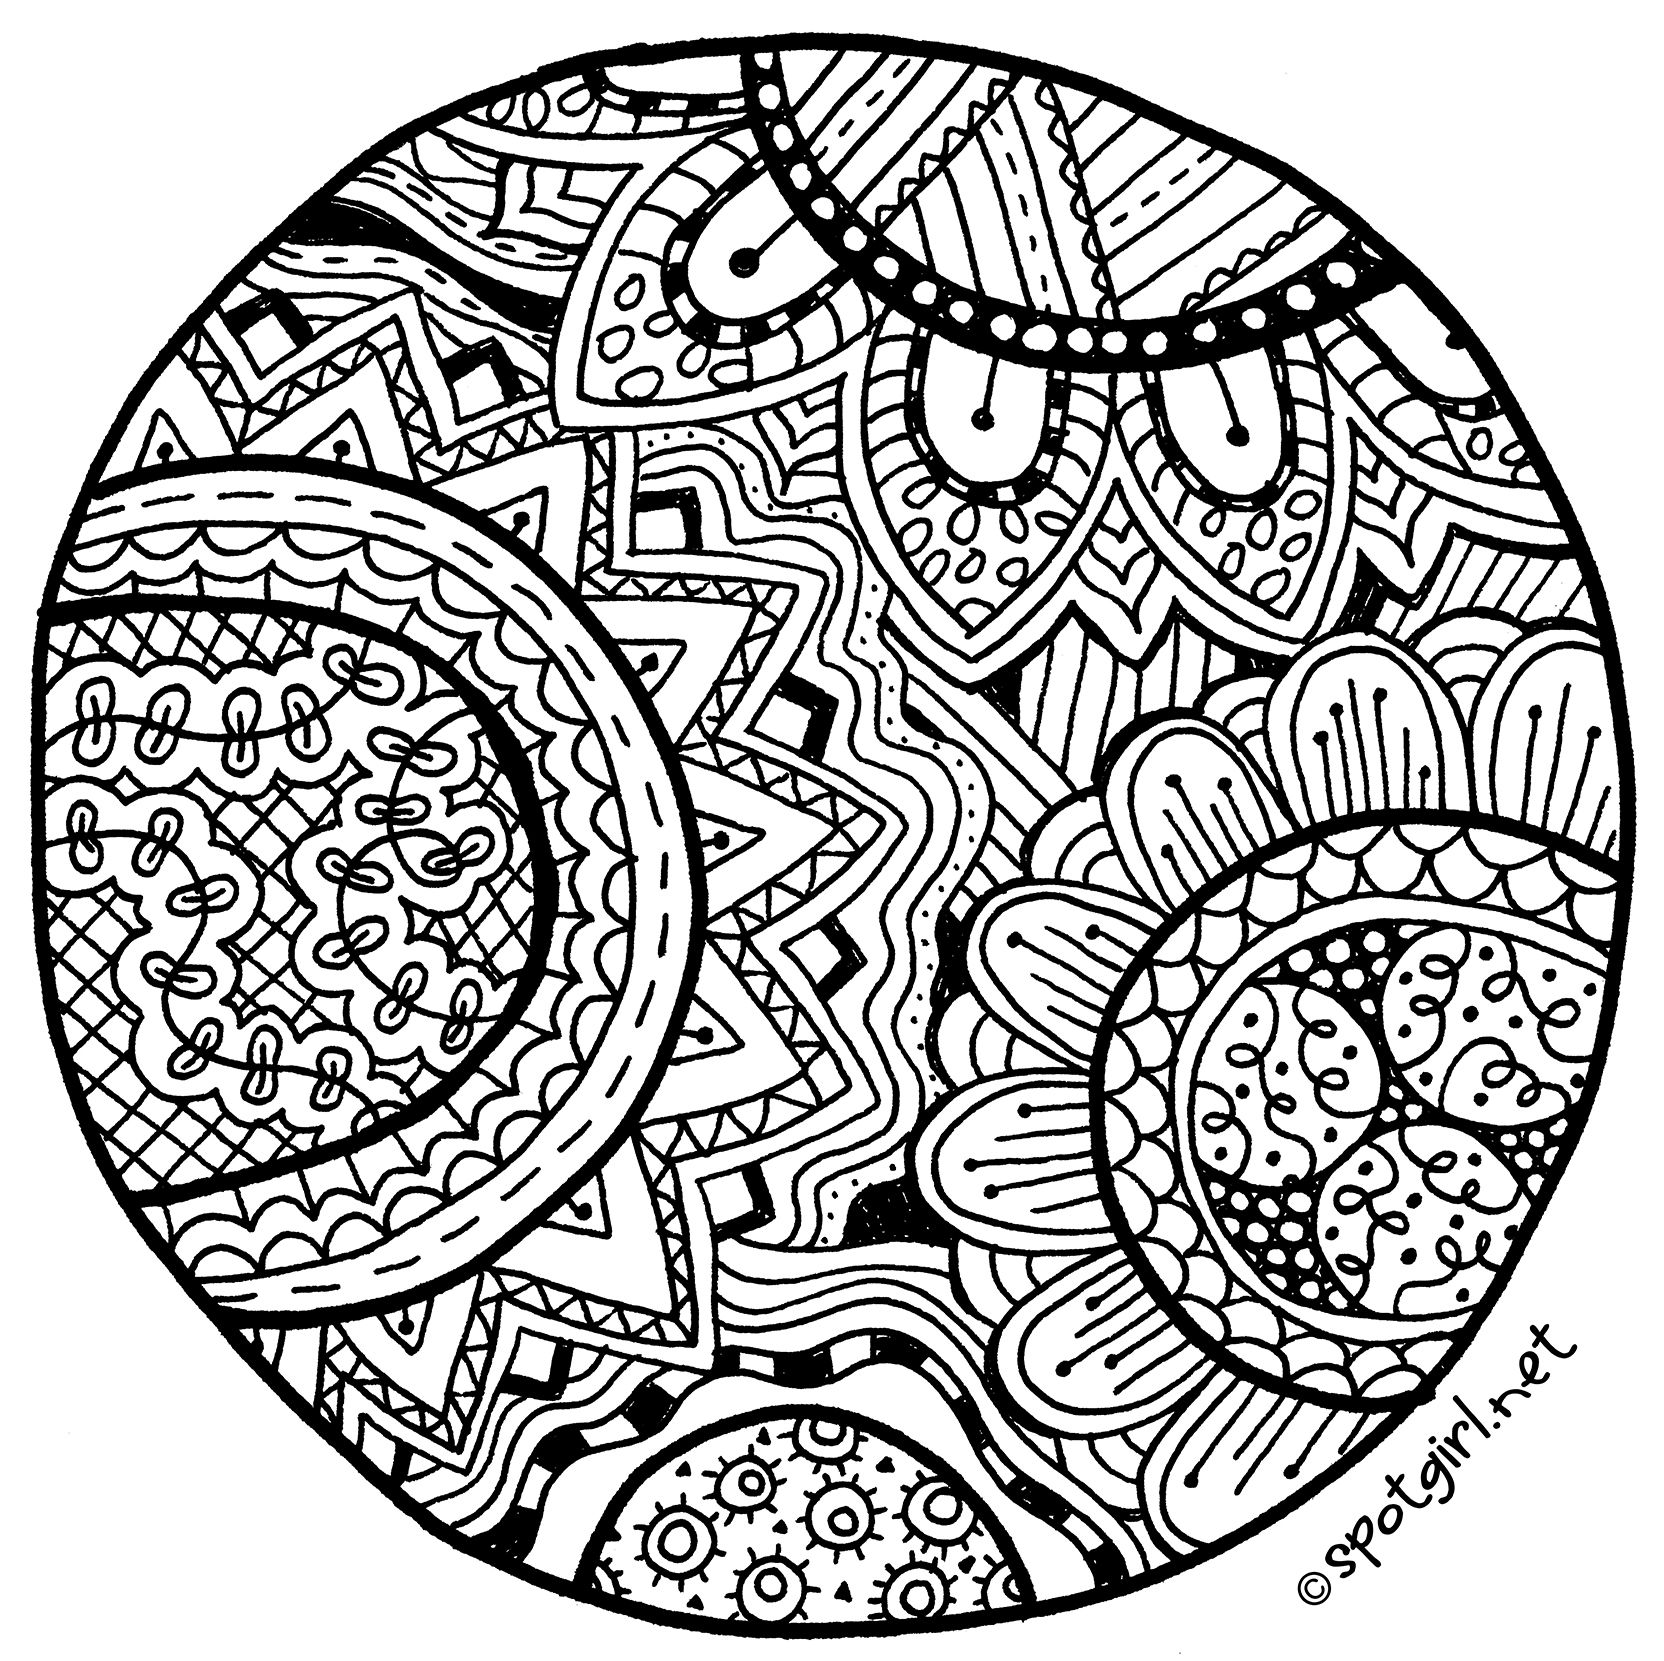 zentangle coloring pages free printable zentangle animal coloring pages at getcoloringscom free coloring free zentangle printable pages